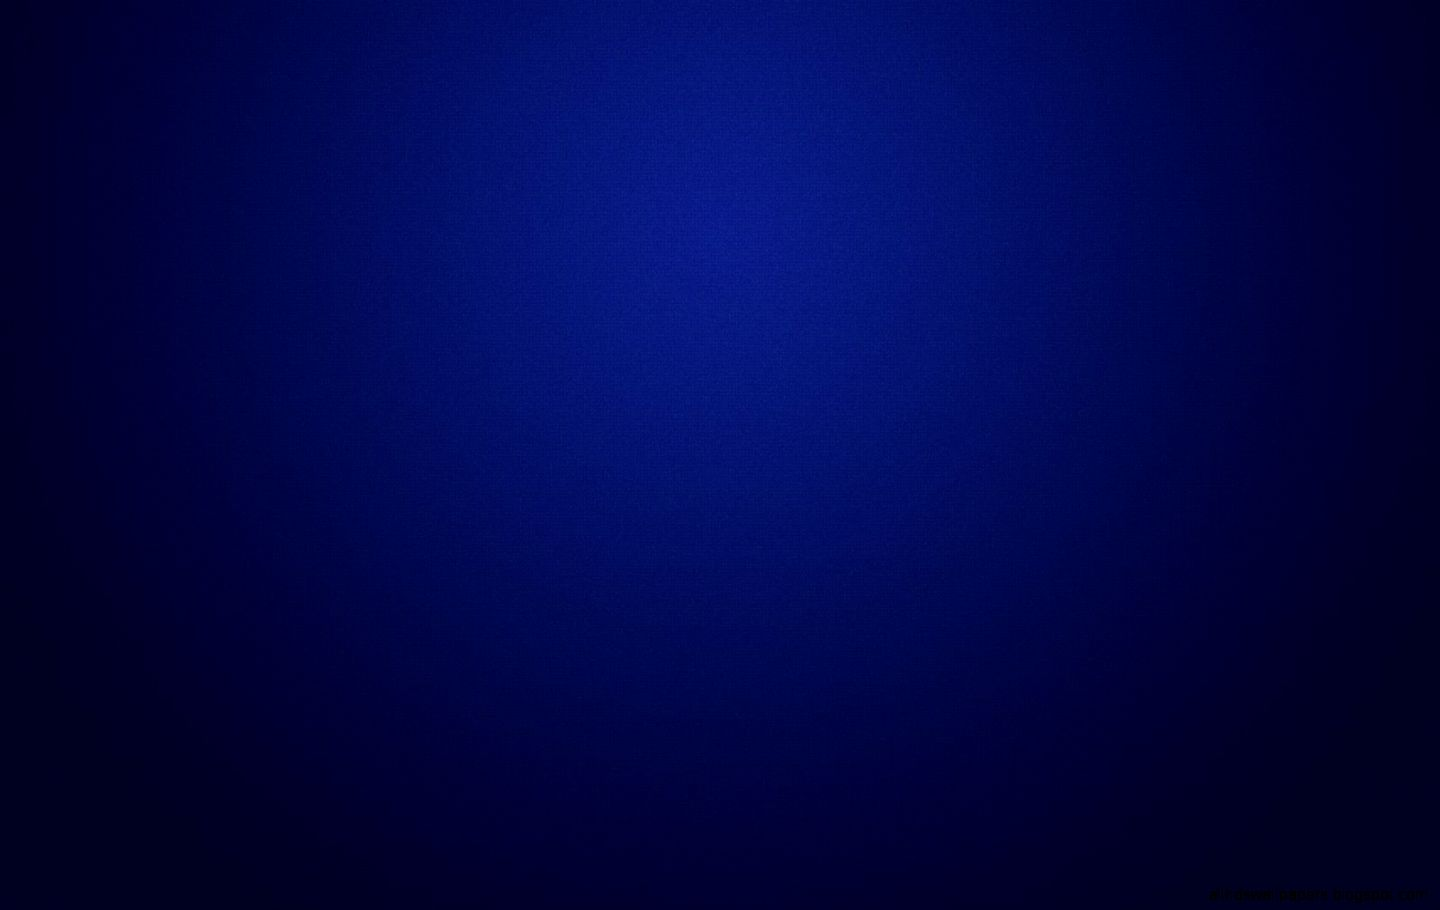 Free Download Navy Blue Background Powerpoint Backgrounds